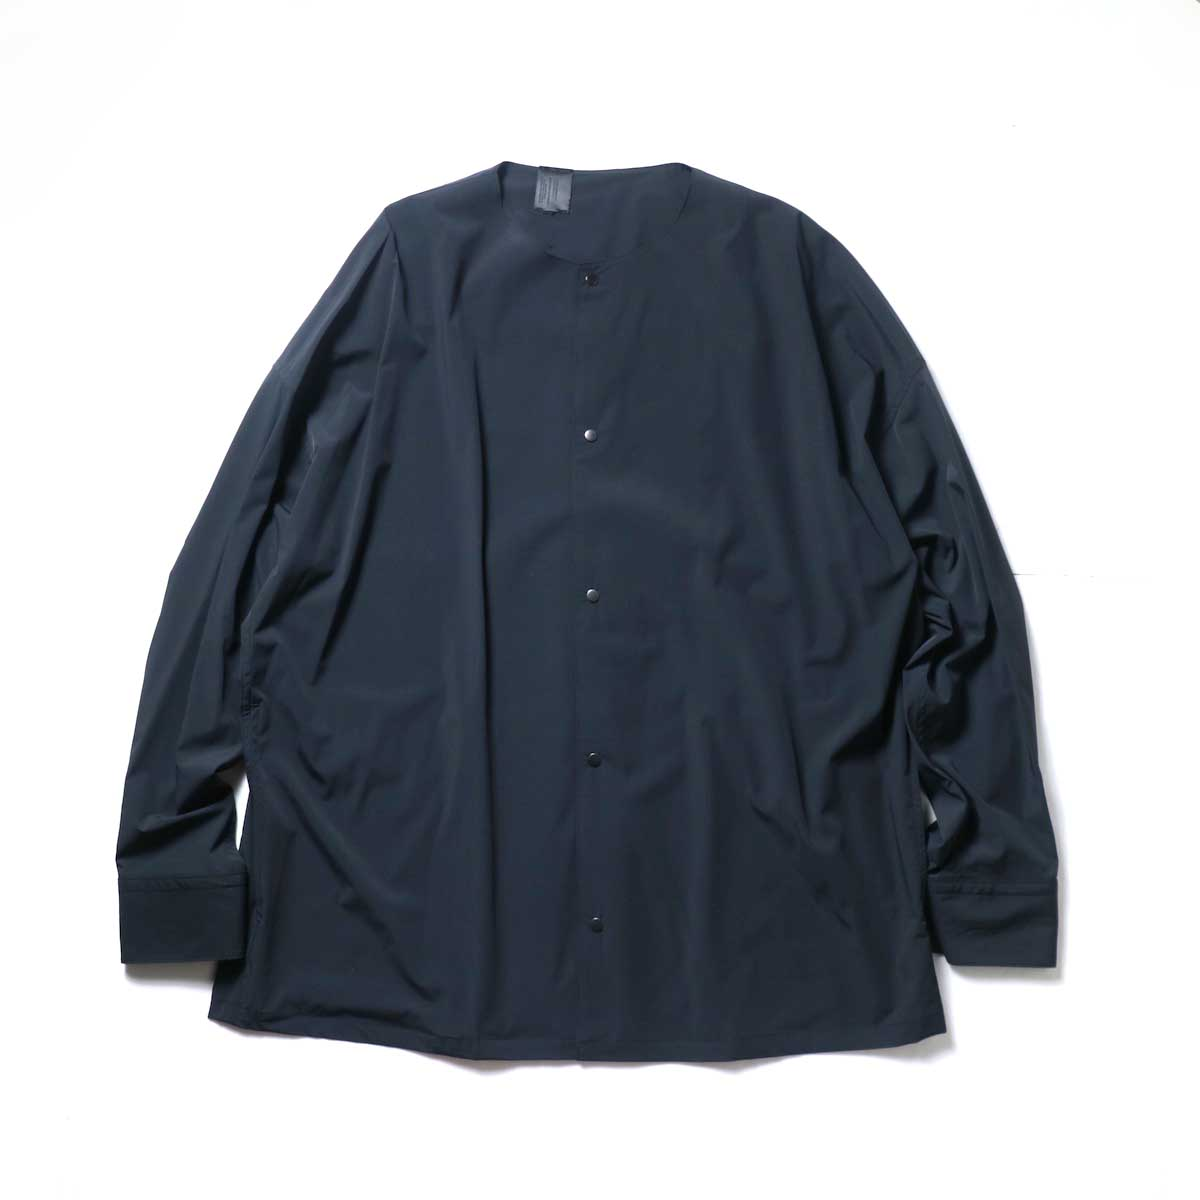 N.HOOLYWOOD / 2211-SH25-006 peg Collarless Shirt (Black)